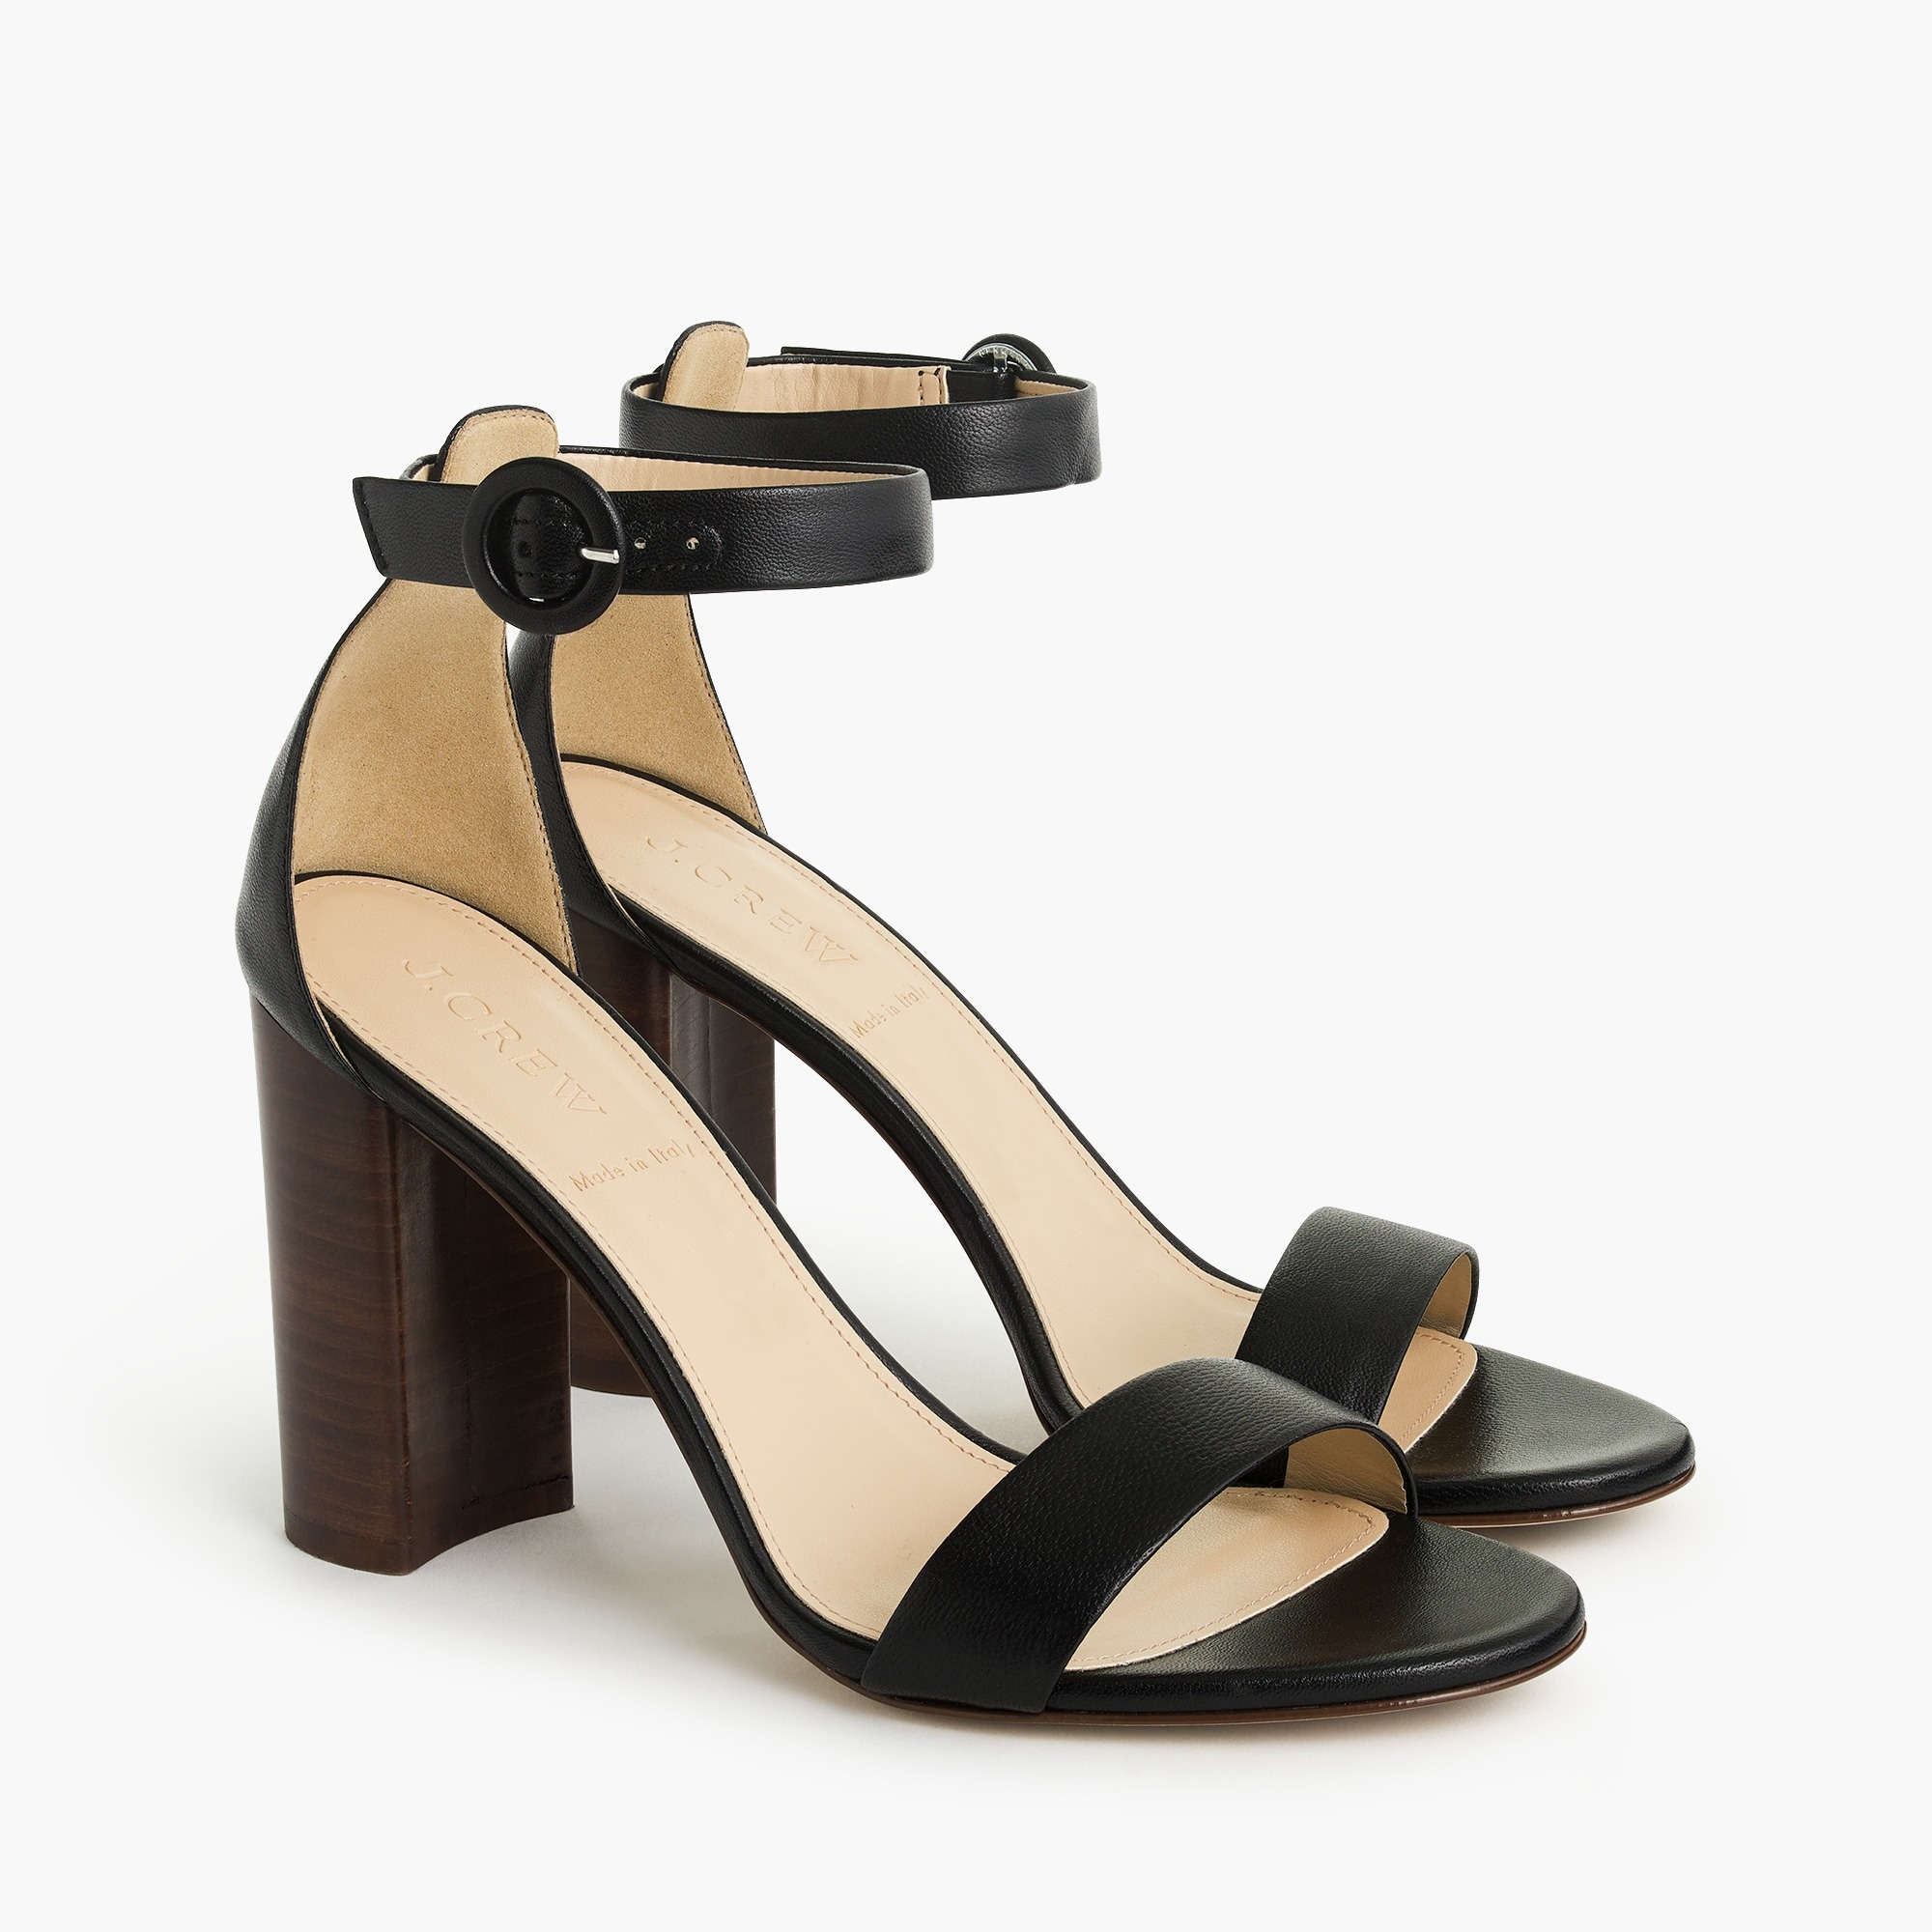 Ankle strap stacked-heel sandals (100mm) women shoes c